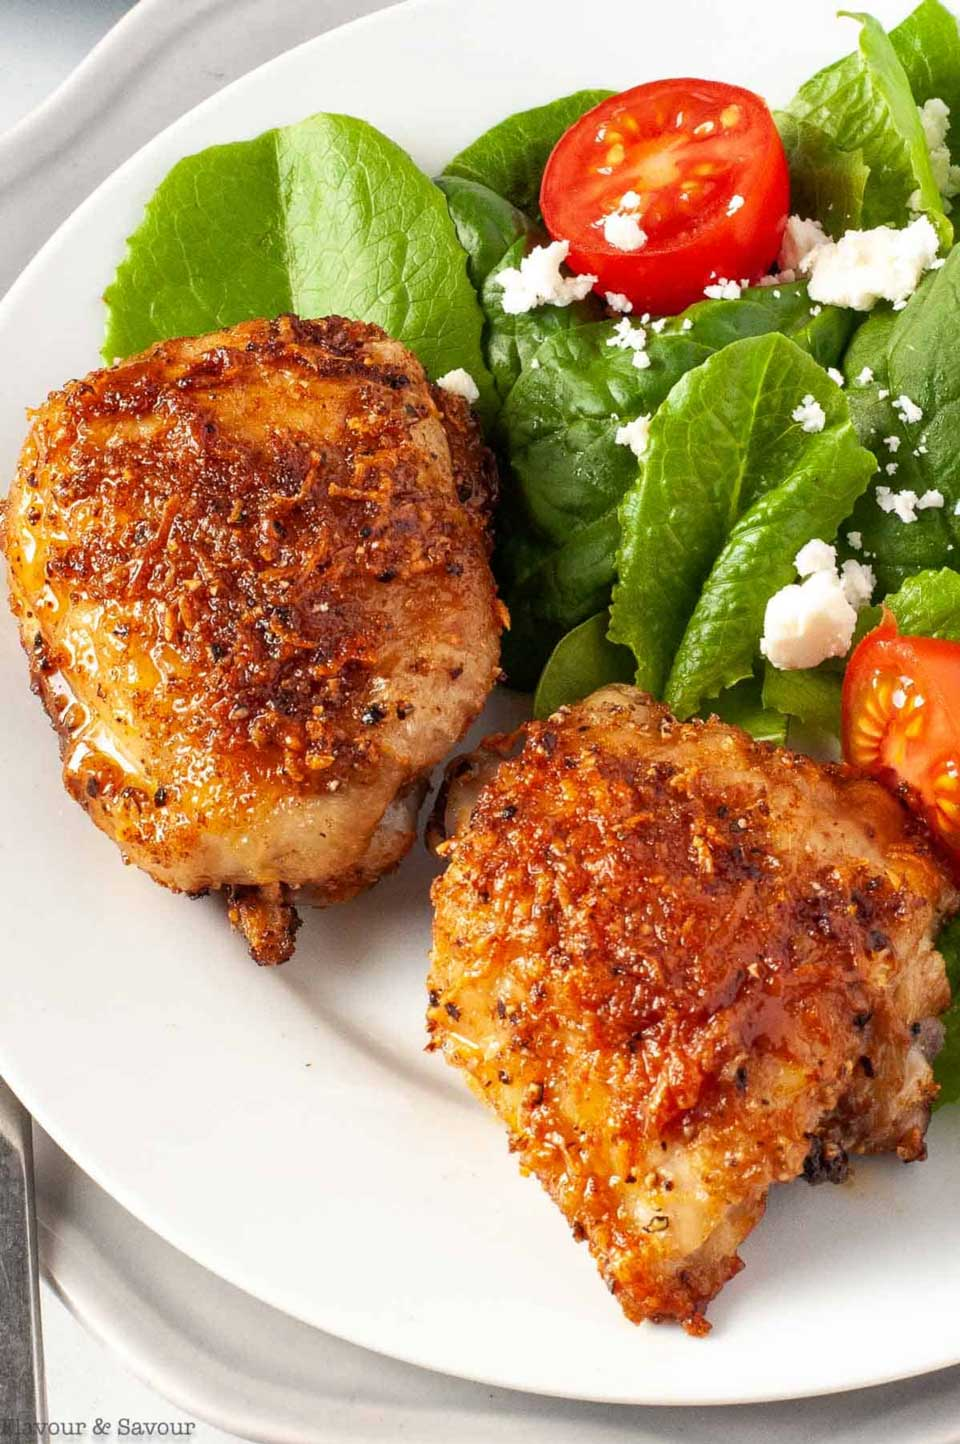 Two thighs on white dinner plate with tomato and feta salad along side.